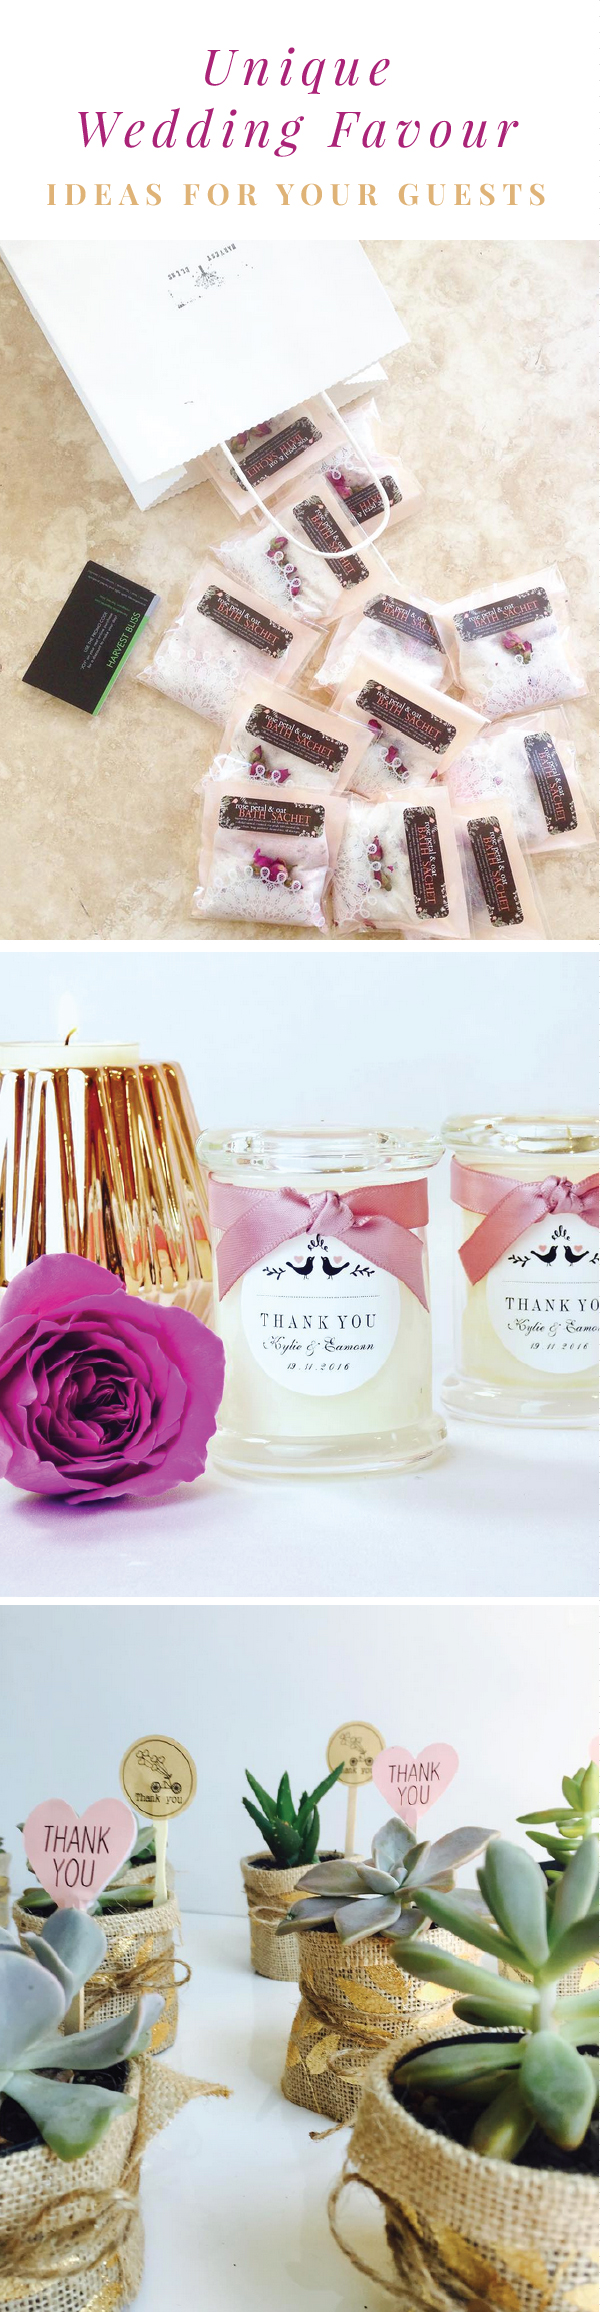 We have searched for some of Australia's best suppliers for your wedding favours! Read the blog to see more!